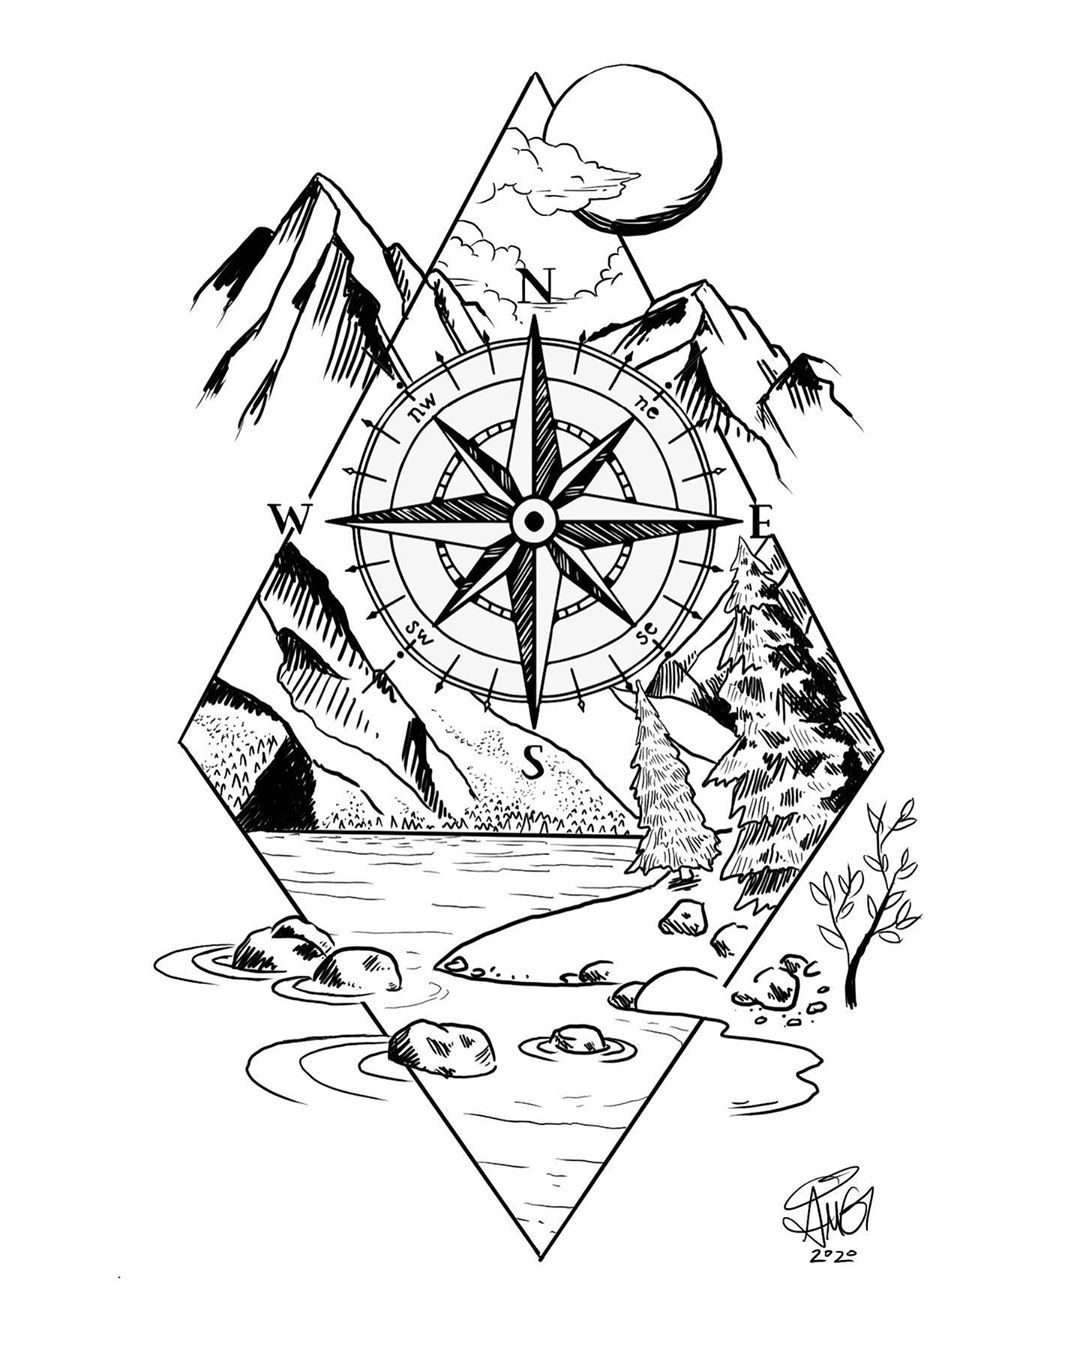 Another commissioned tattoo design. Do you have an idea that you'd like to see come to life? Contact me today!  #tattoo #tattoodesign #tattoosofig #tahoe #cali #outdoors #nature #mountains #compass #laketahoe #art #drawing #design #artwork #sketch #sketchbook #drawdaily #illustration